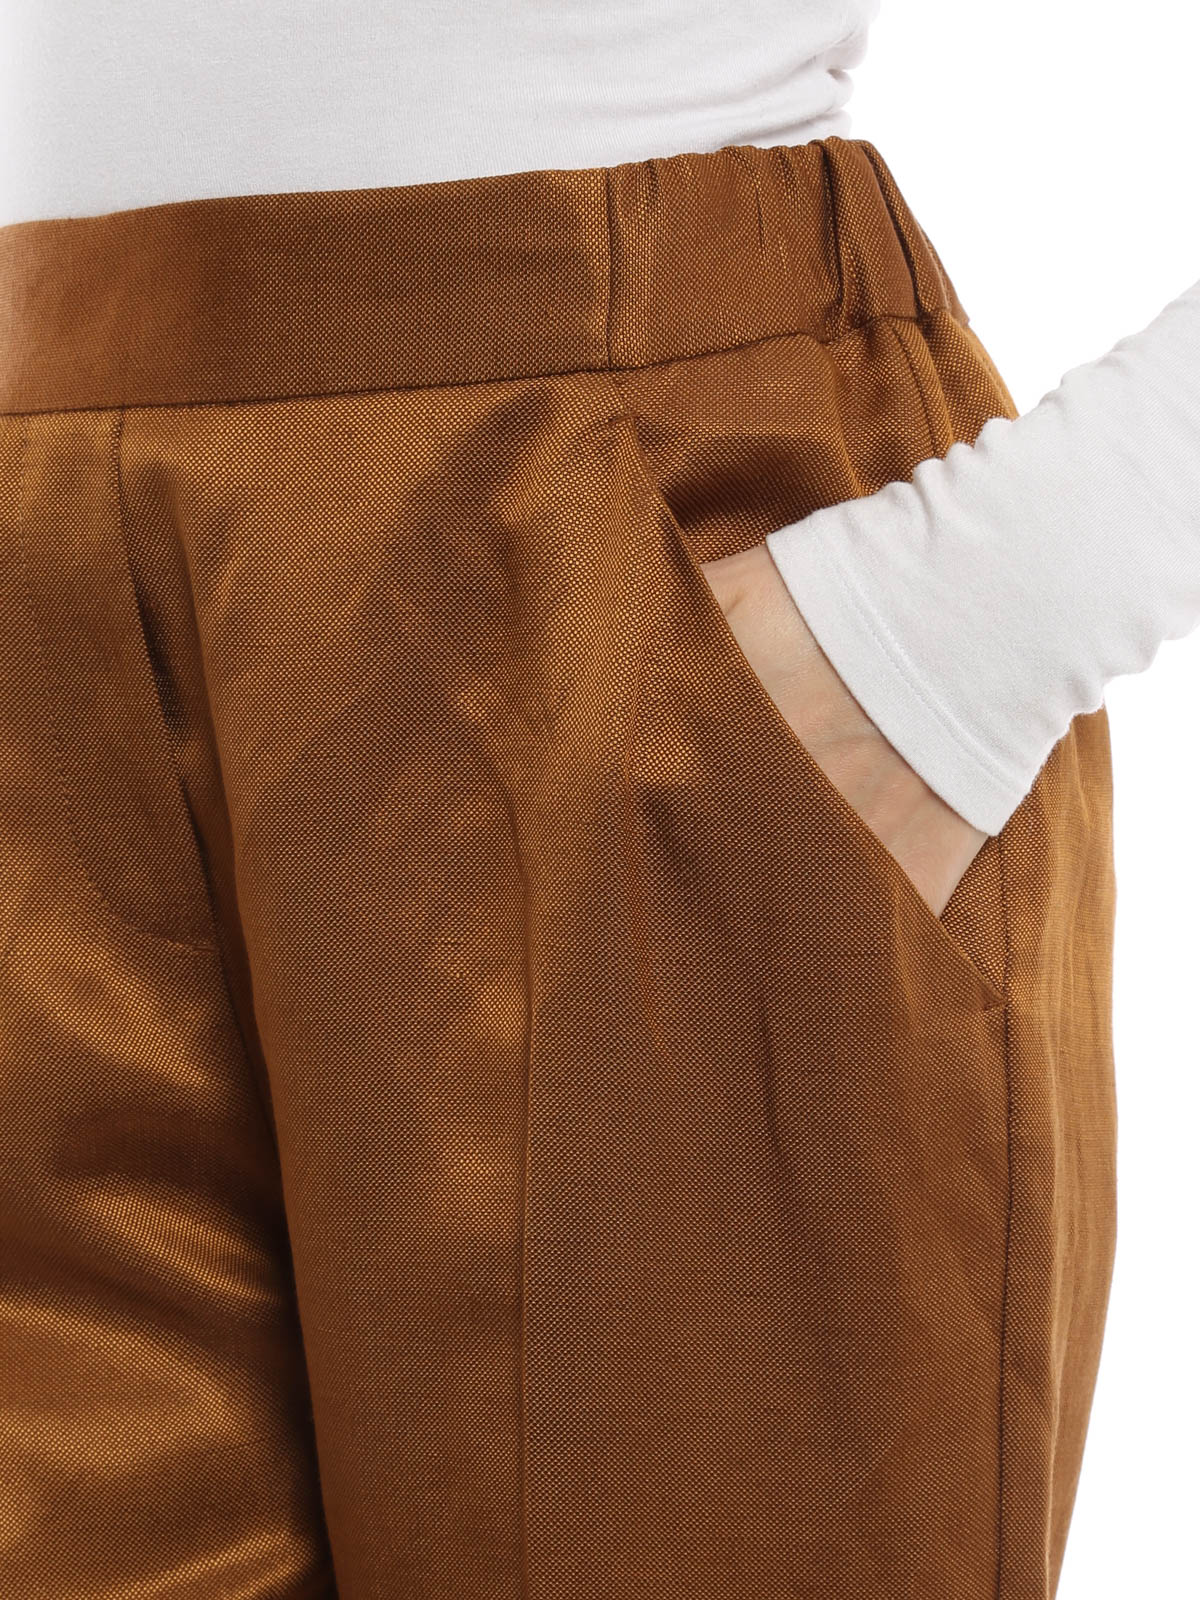 Trousers featuring elastic waist by mm6 maison margiela for Mm6 maison margiela